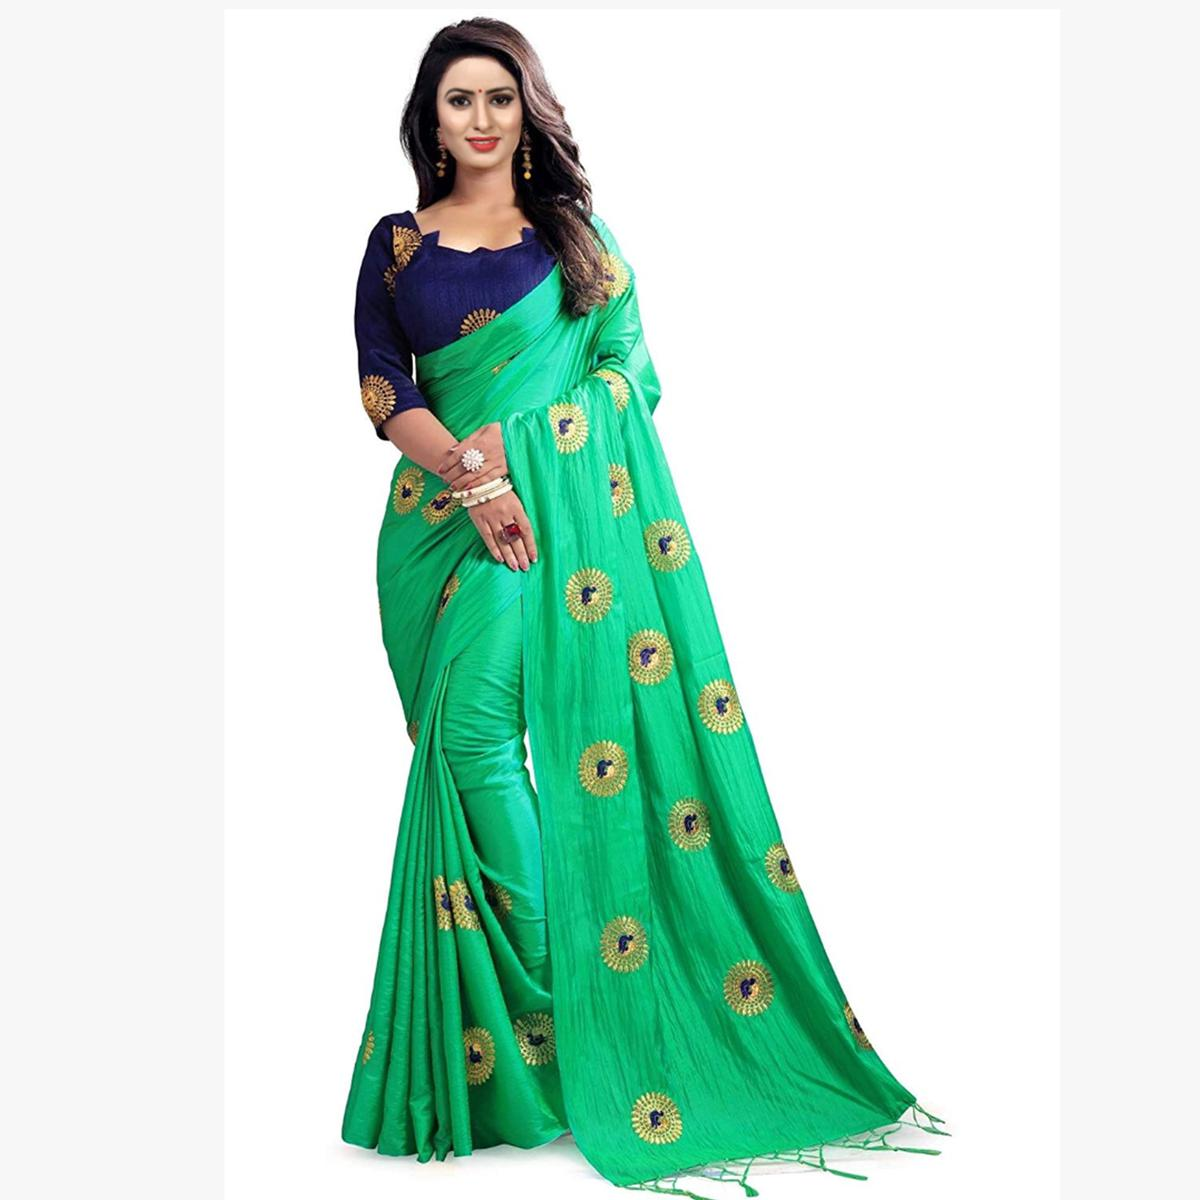 Amazing Turquoise Green Colored Partywear Embroidered Paper Silk Saree